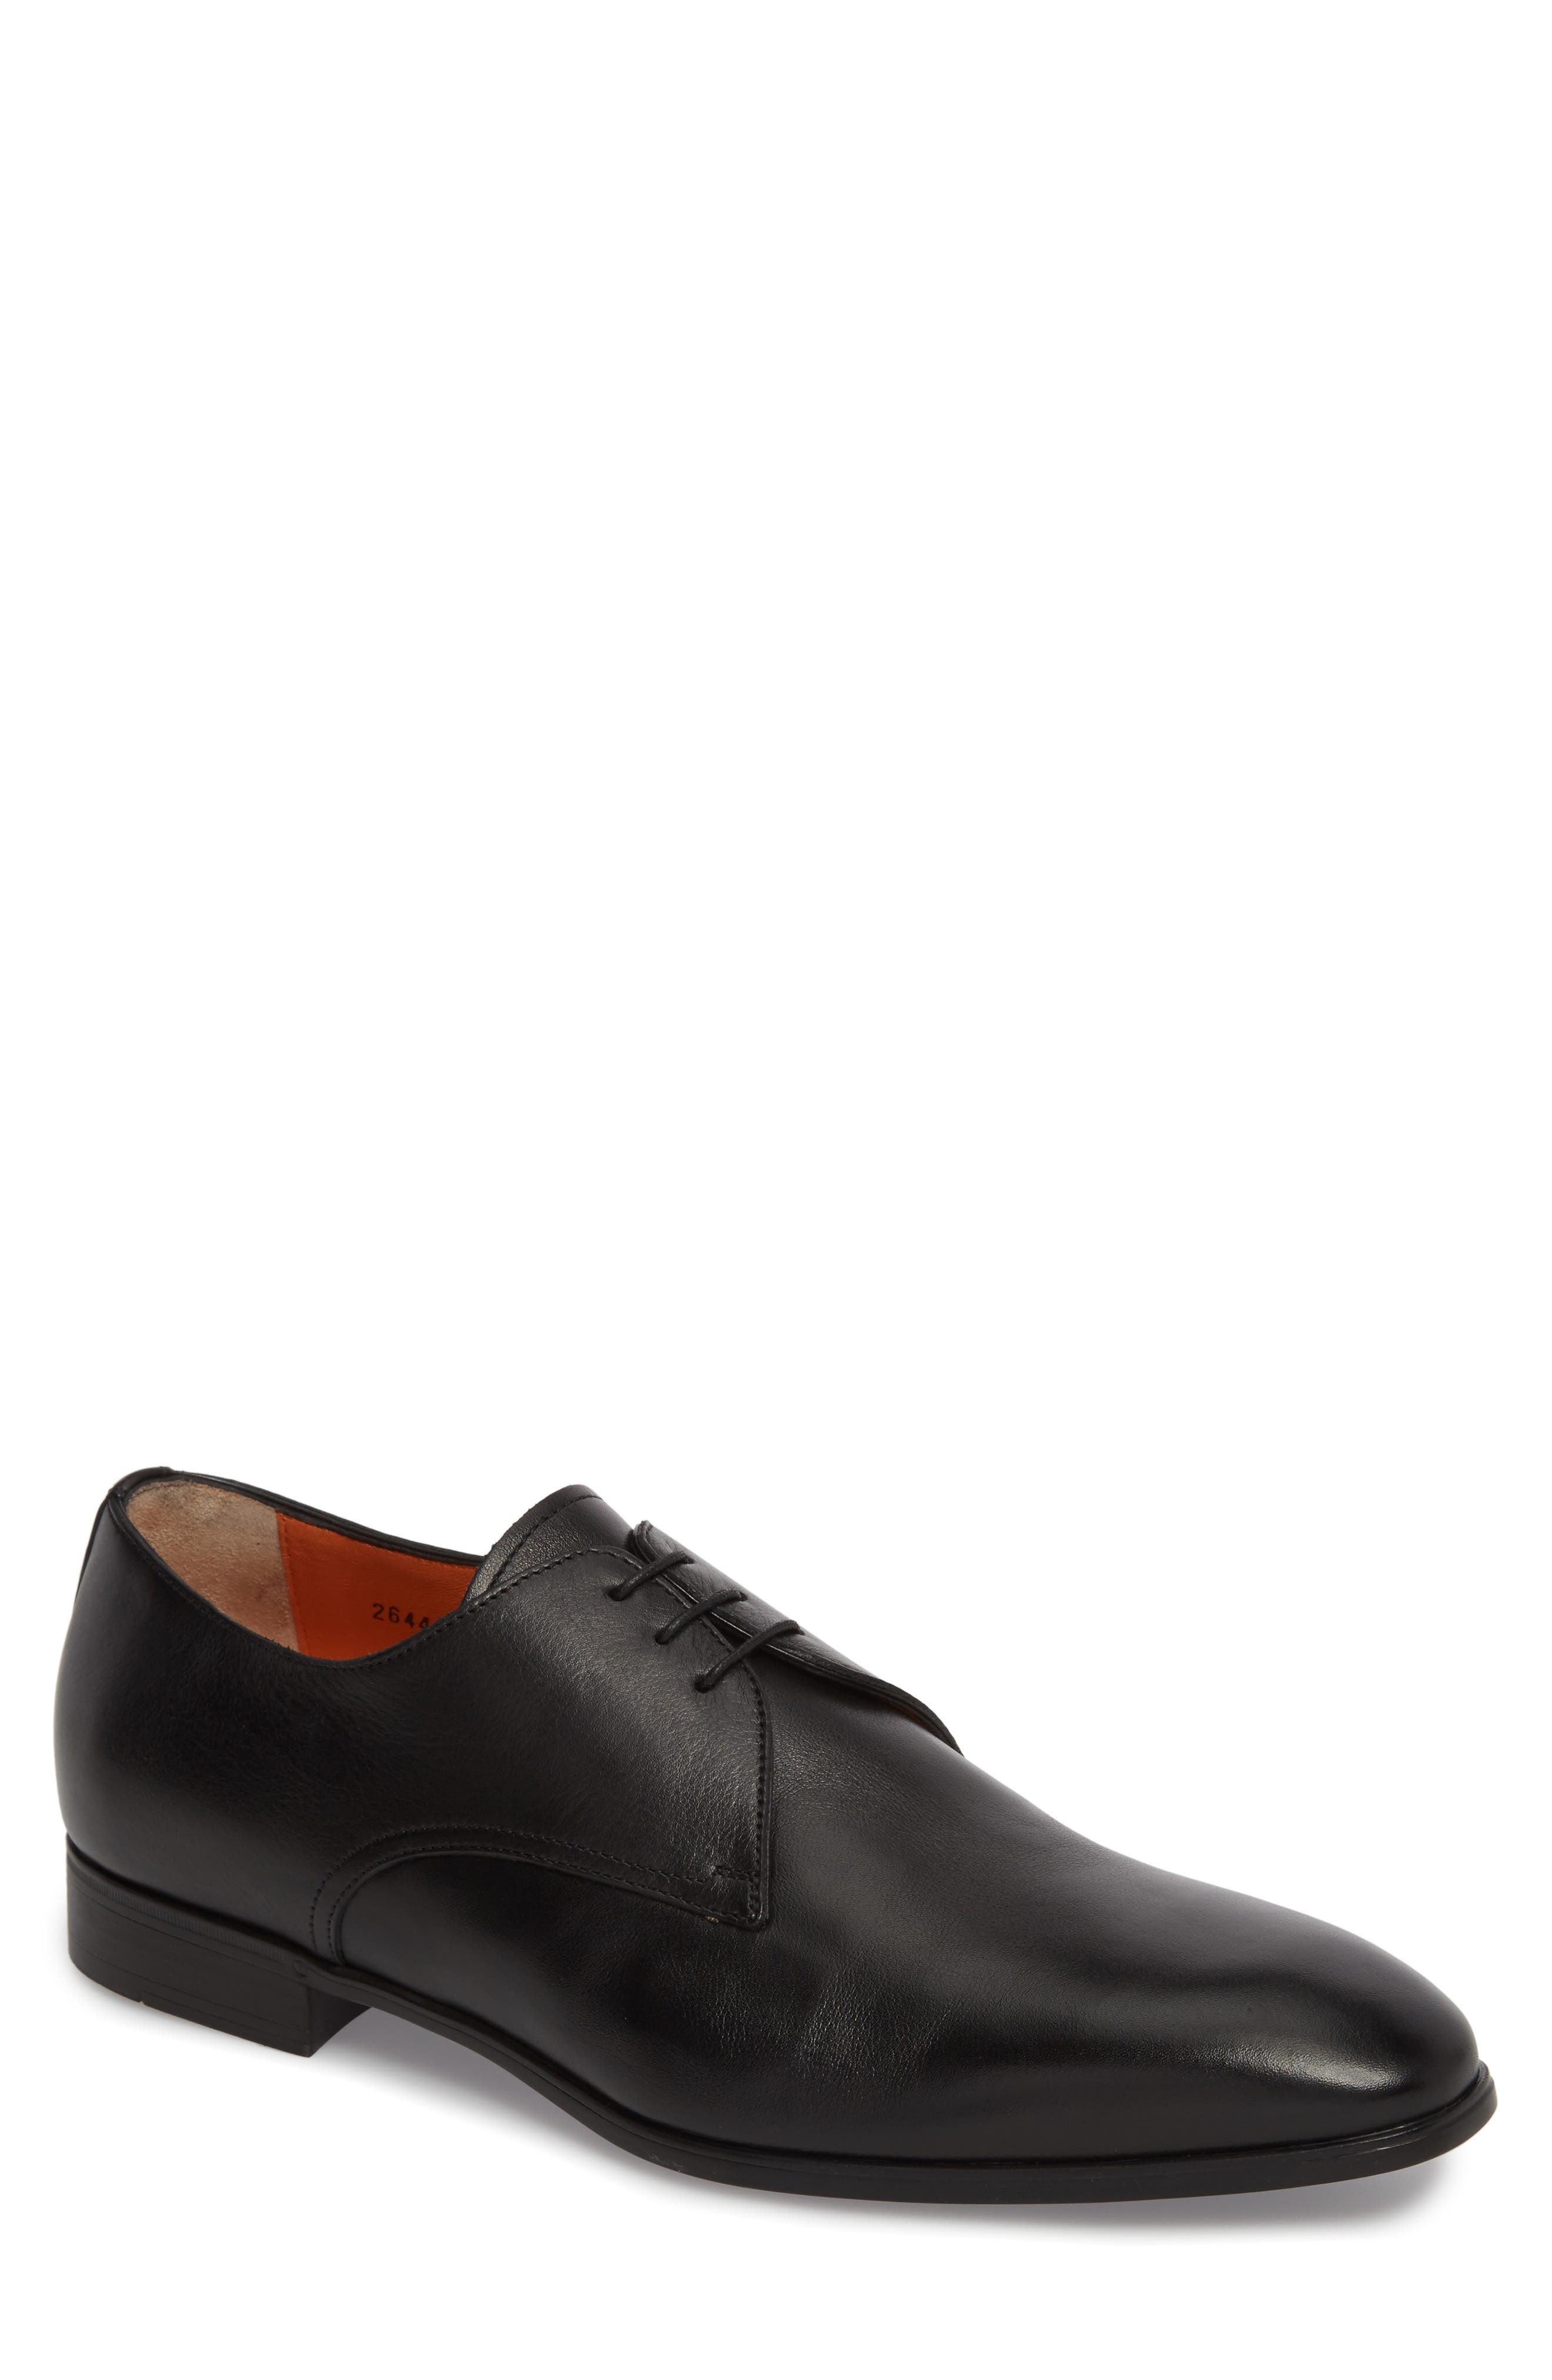 SANTONI Glenn Plain Toe Derby, Main, color, 001